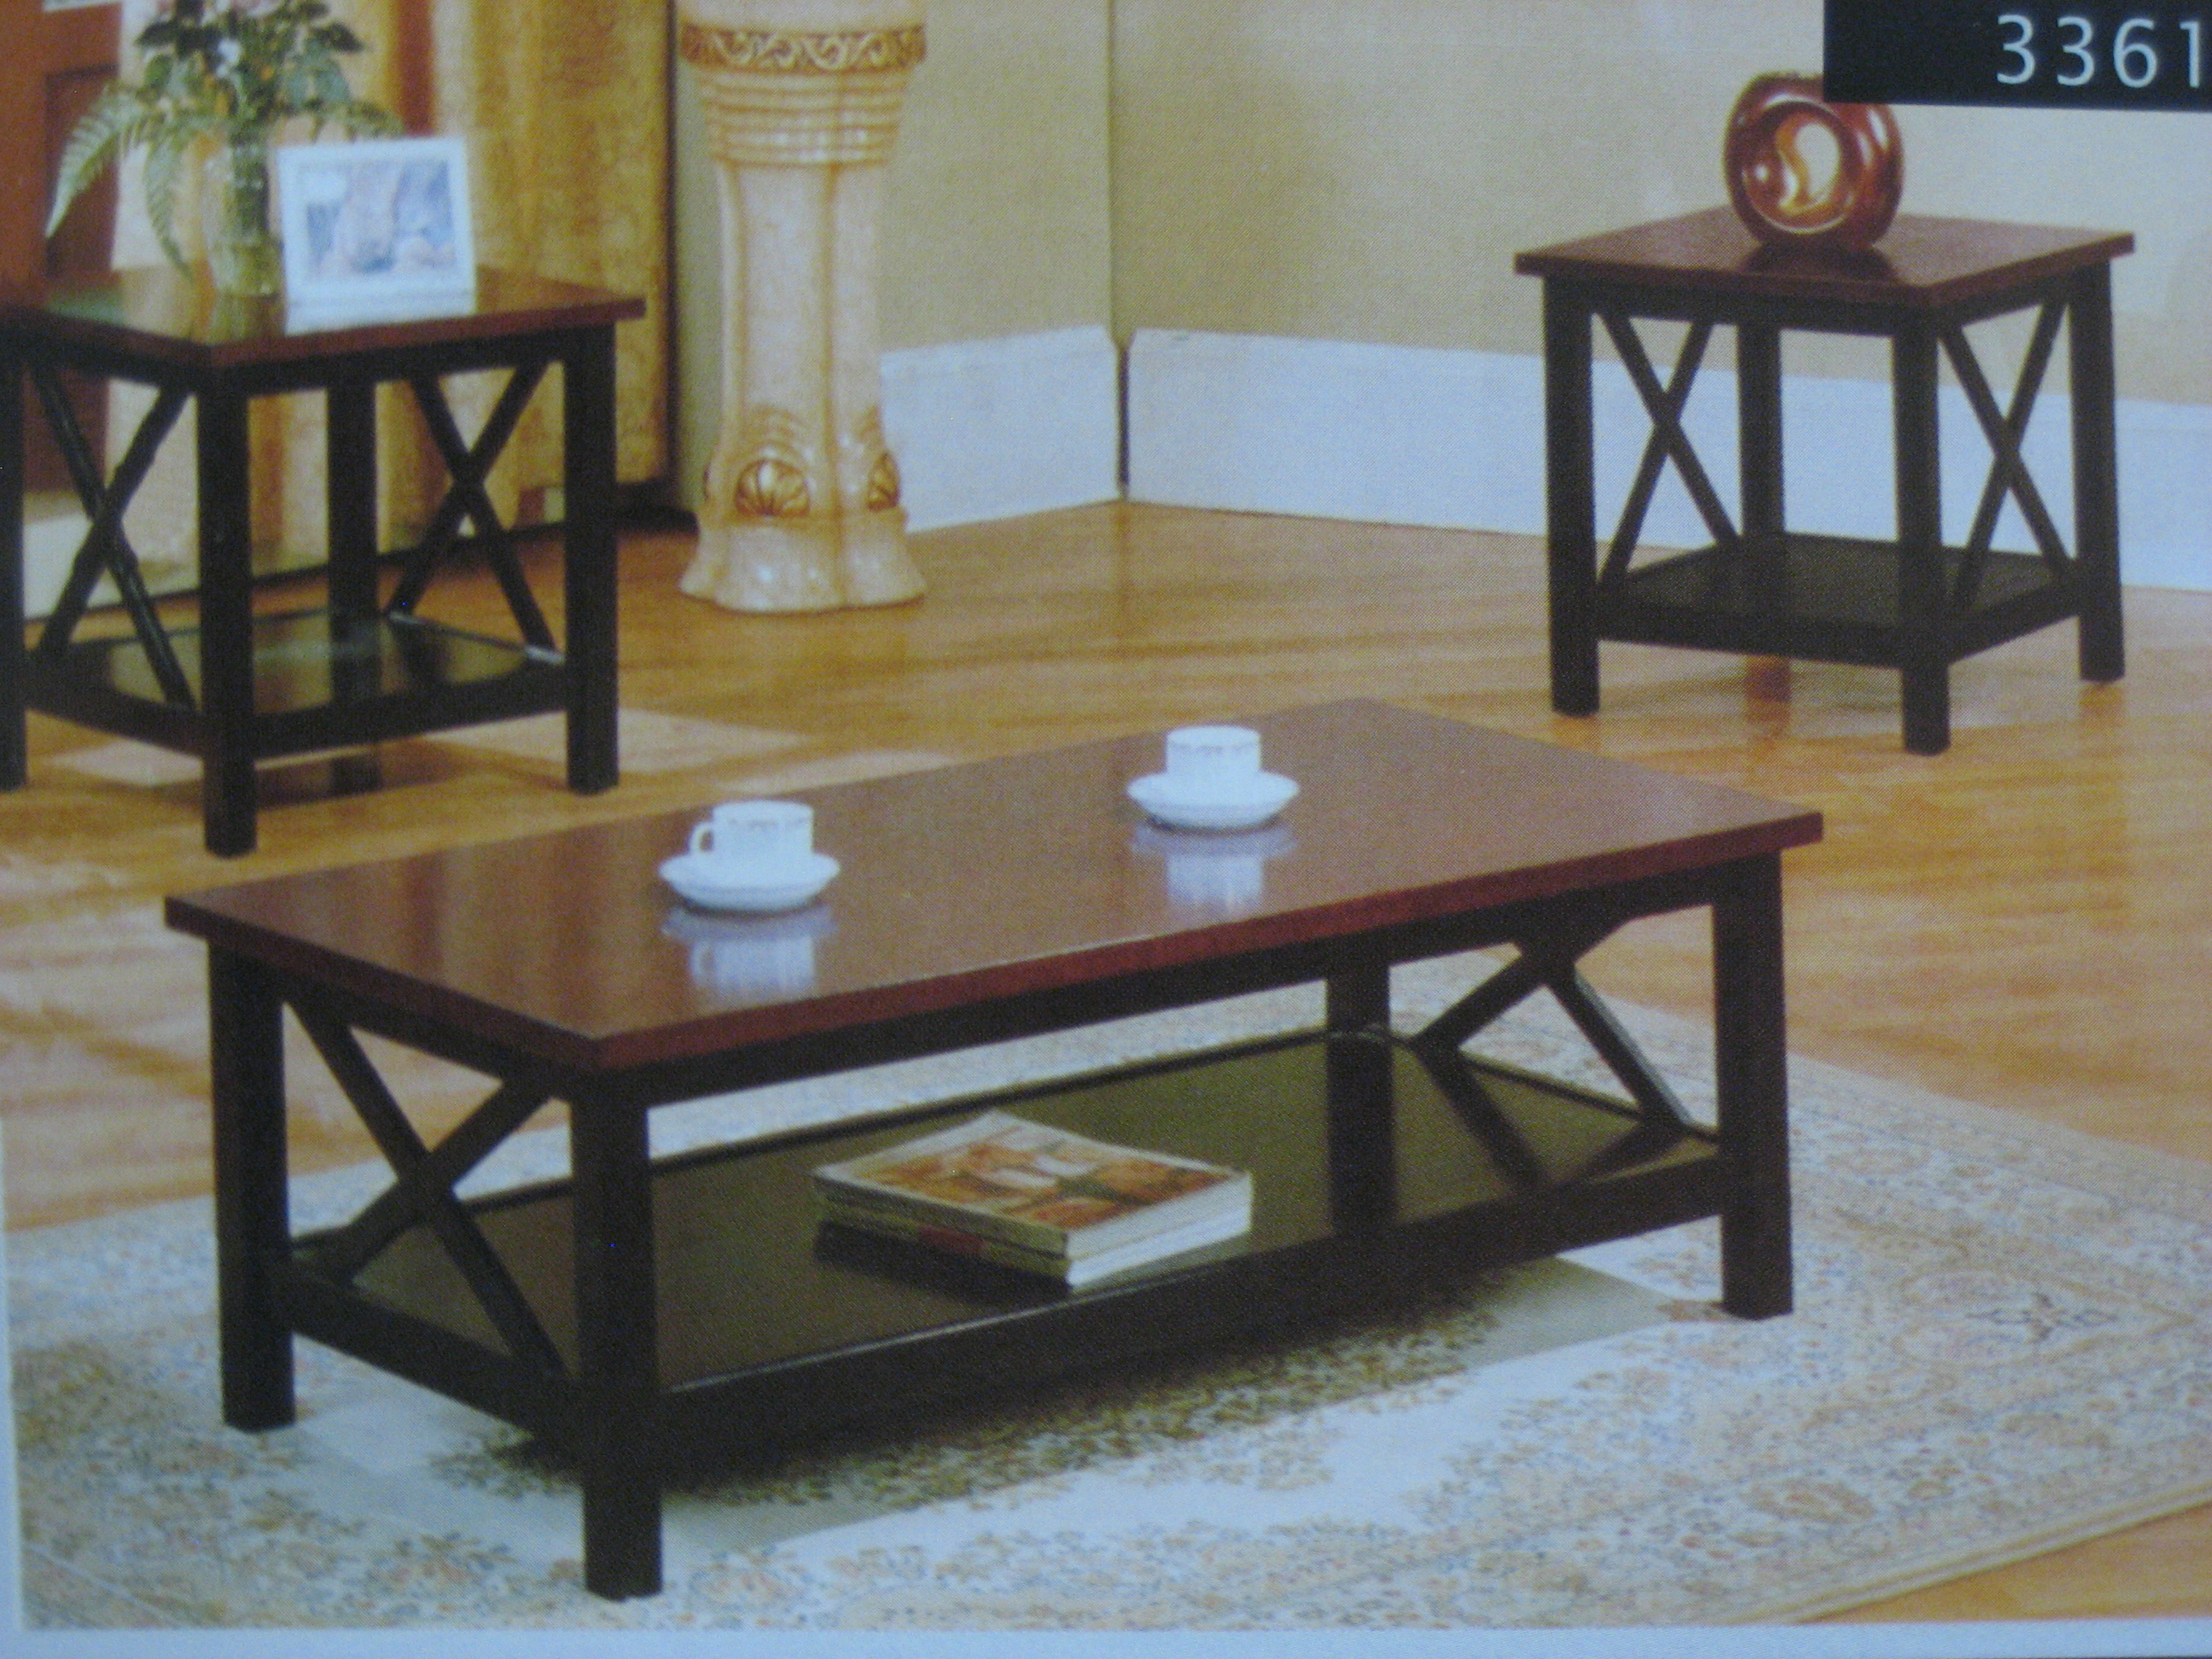 coffee table with end tables rascalartsnyc set furniture and sets deck fire pit brown leather couch pillow ideas bedroom dressers grey wash round leick mission chairside swing arm